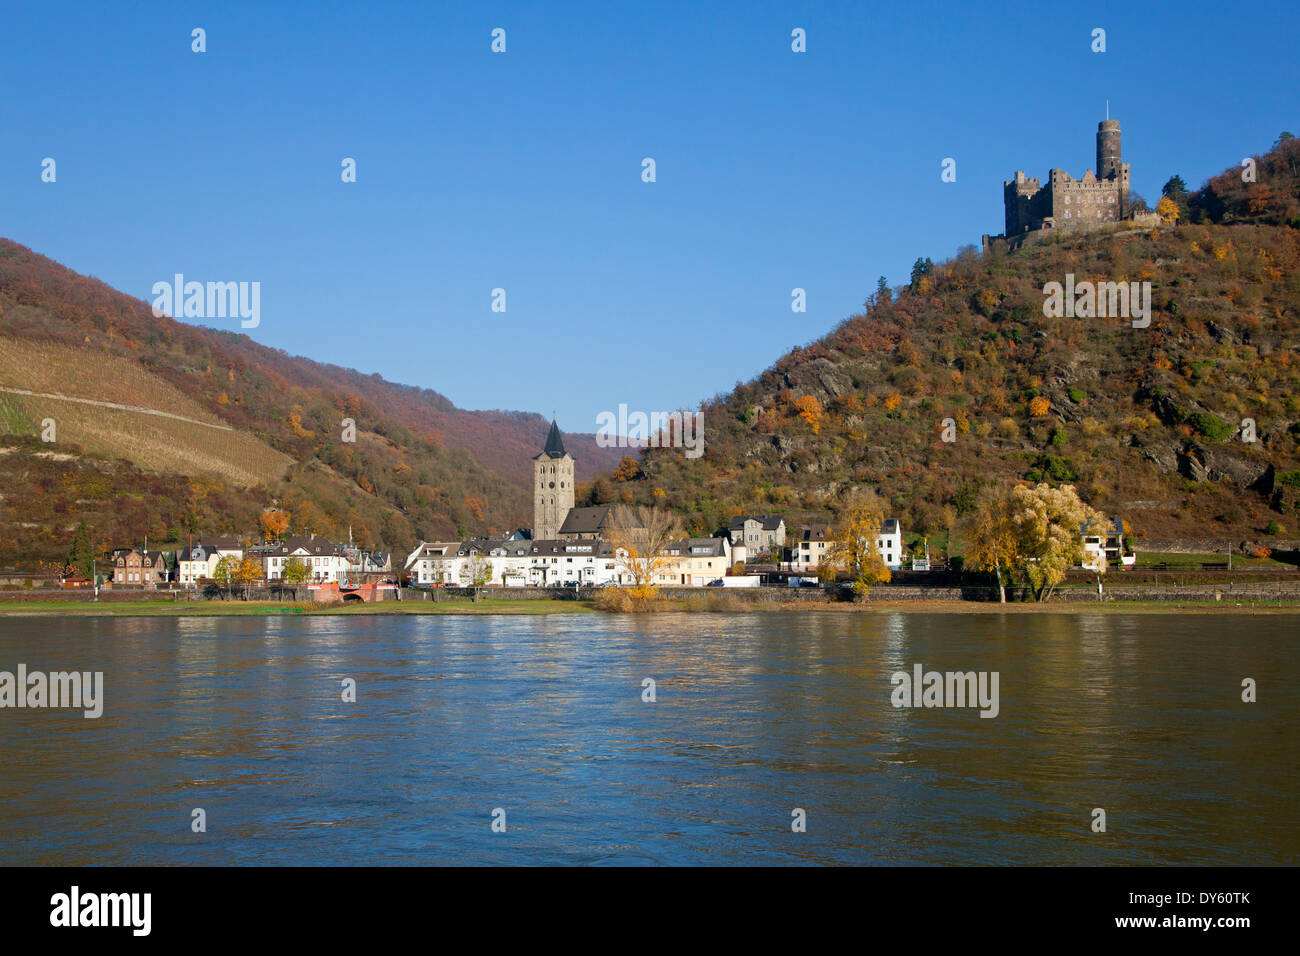 Maus castle above St Goarshausen-Wellmich, Rhine river, Rhineland-Palatinate, Germany Stock Photo